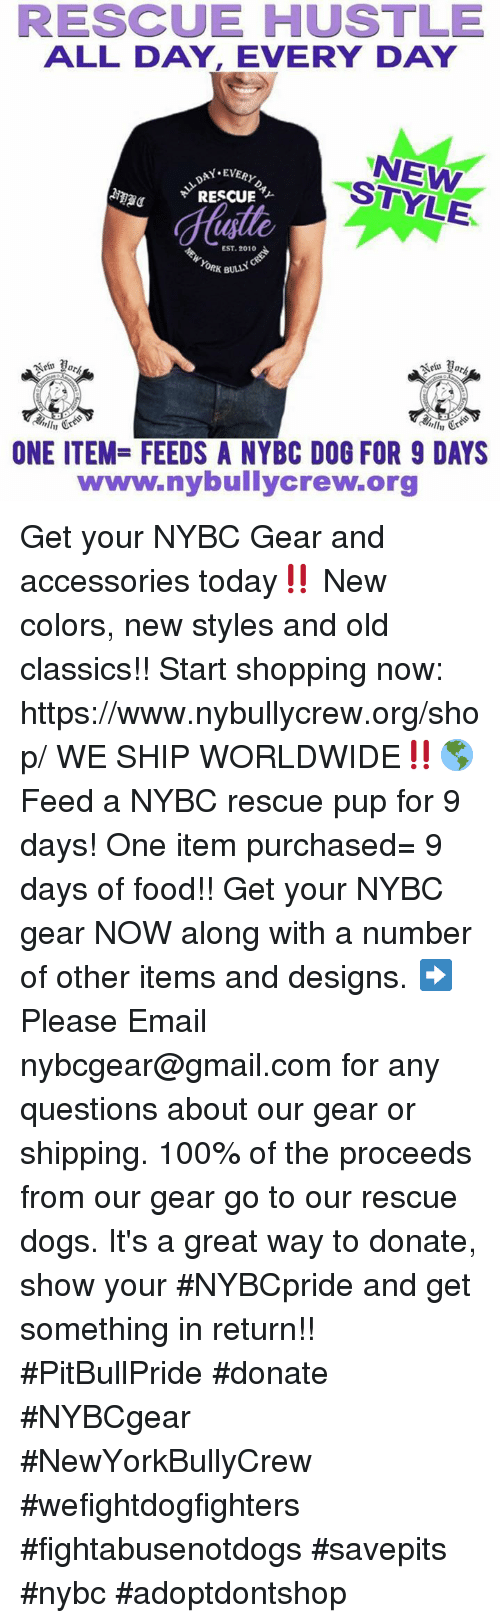 Anaconda, Dogs, and Food: RESCUE HUSTLE  ALL DAY, EVERY DAY  NEW  STYLE  \.EVERYD  RESCUE  iale  us  EST. 2010  YORK BULL  nllu  ONE ITEM-FEEDS A NYBC DOG FOR 9 DAYS  www.nybullycrew.org Get your NYBC Gear and accessories today‼️ New colors, new styles and old classics!! Start shopping now: https://www.nybullycrew.org/shop/  WE SHIP WORLDWIDE‼️🌎 Feed a NYBC rescue pup for 9 days! One item purchased= 9 days of food!! Get your NYBC gear NOW along with a number of other items and designs.   ➡️ Please Email nybcgear@gmail.com for any questions about our gear or shipping.  100% of the proceeds from our gear go to our rescue dogs. It's a great way to donate, show your #NYBCpride and get something in return!!  #PitBullPride #donate   #NYBCgear #NewYorkBullyCrew #wefightdogfighters #fightabusenotdogs #savepits  #nybc  #adoptdontshop